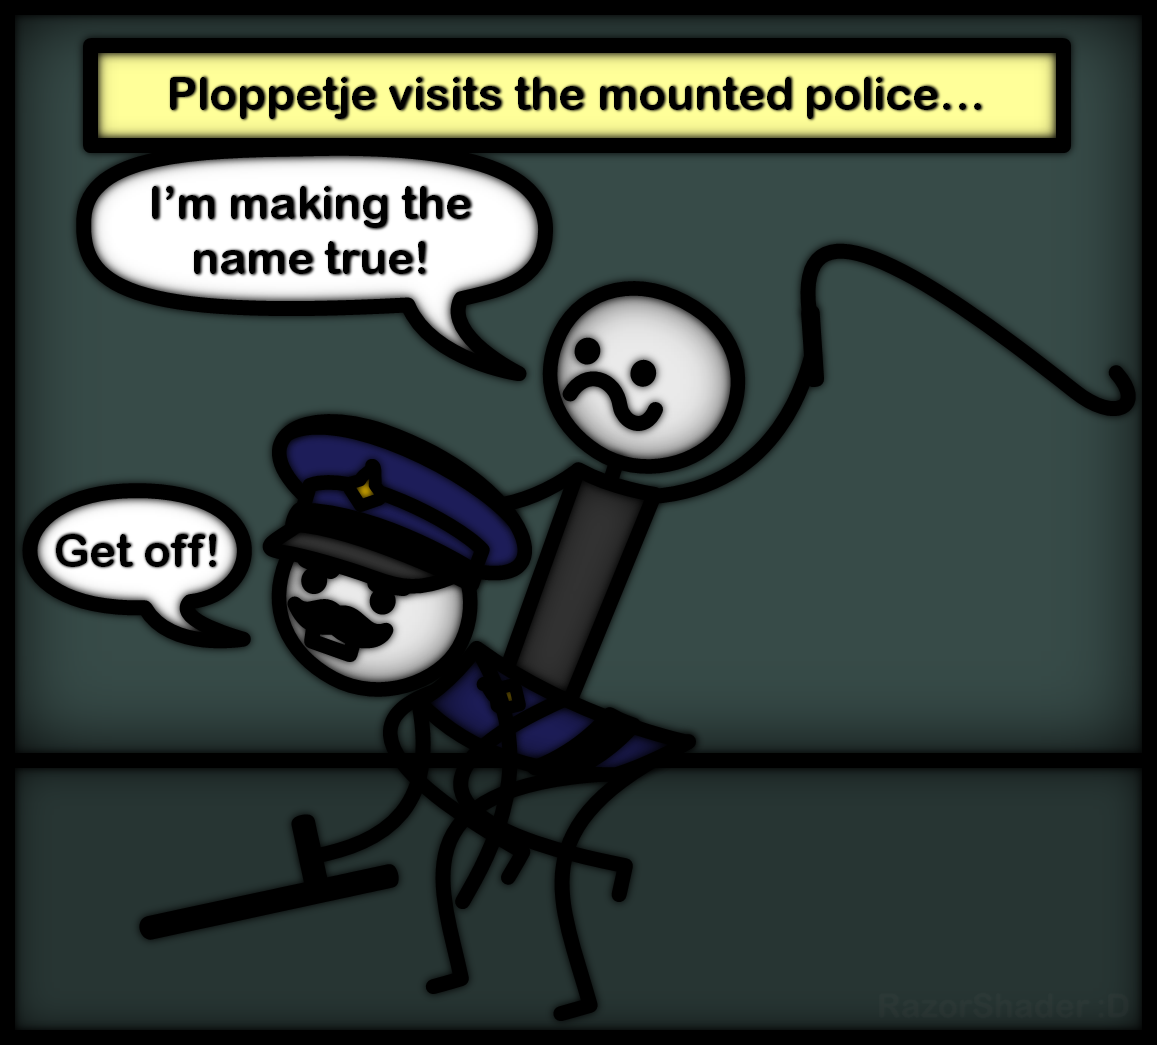 Ploppetje and the mounted police